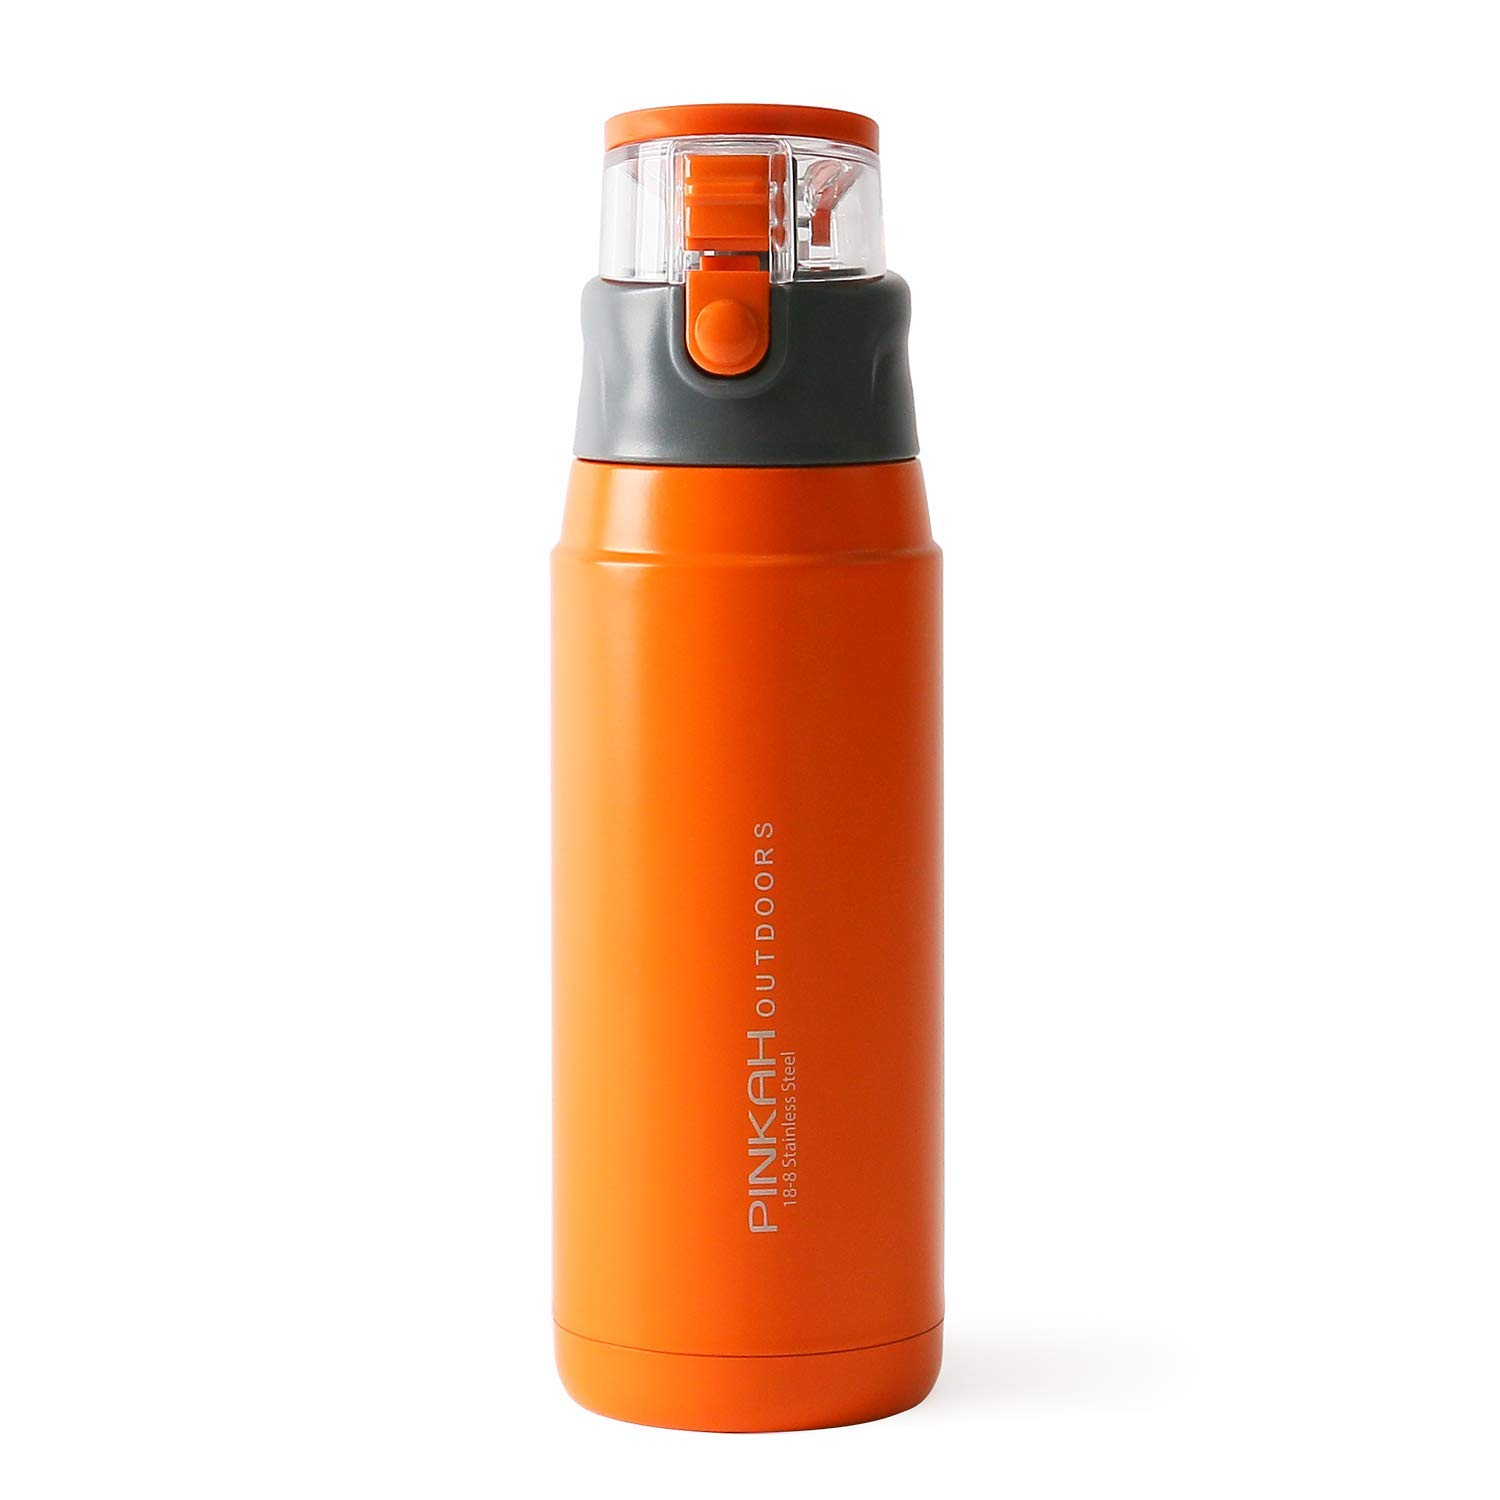 MEIGIX Insulated Water Bottle Stainless Steel Travel Mug Leak Proof, for Home, Sports, Outdoor, School, Gift, Ice Drinks and Hot Beverage, 22 oz, PJ-3504 (Orange/Transparent)